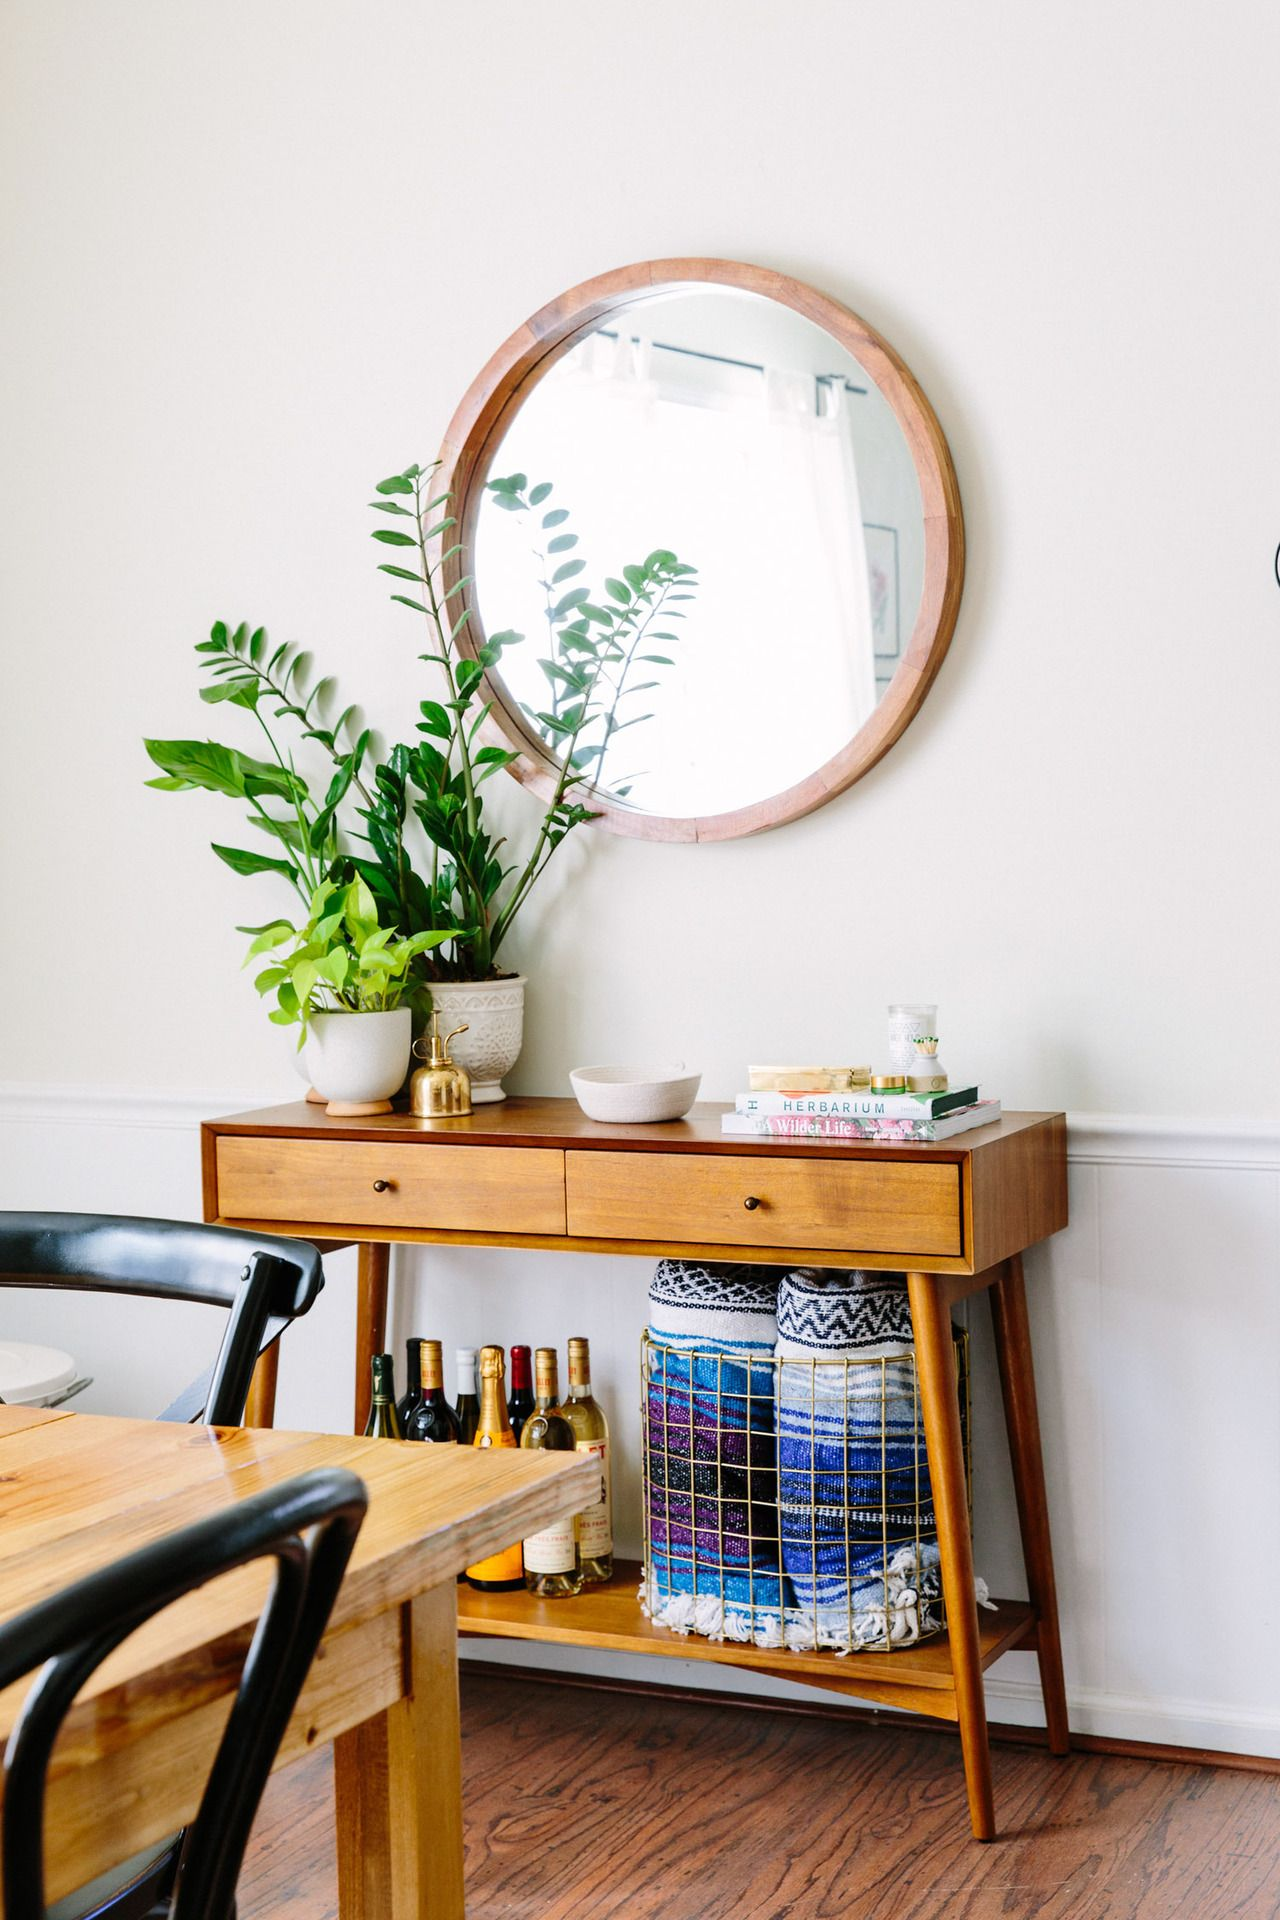 West Elm Mid Century Console Table for $399 vs Cupertino Console